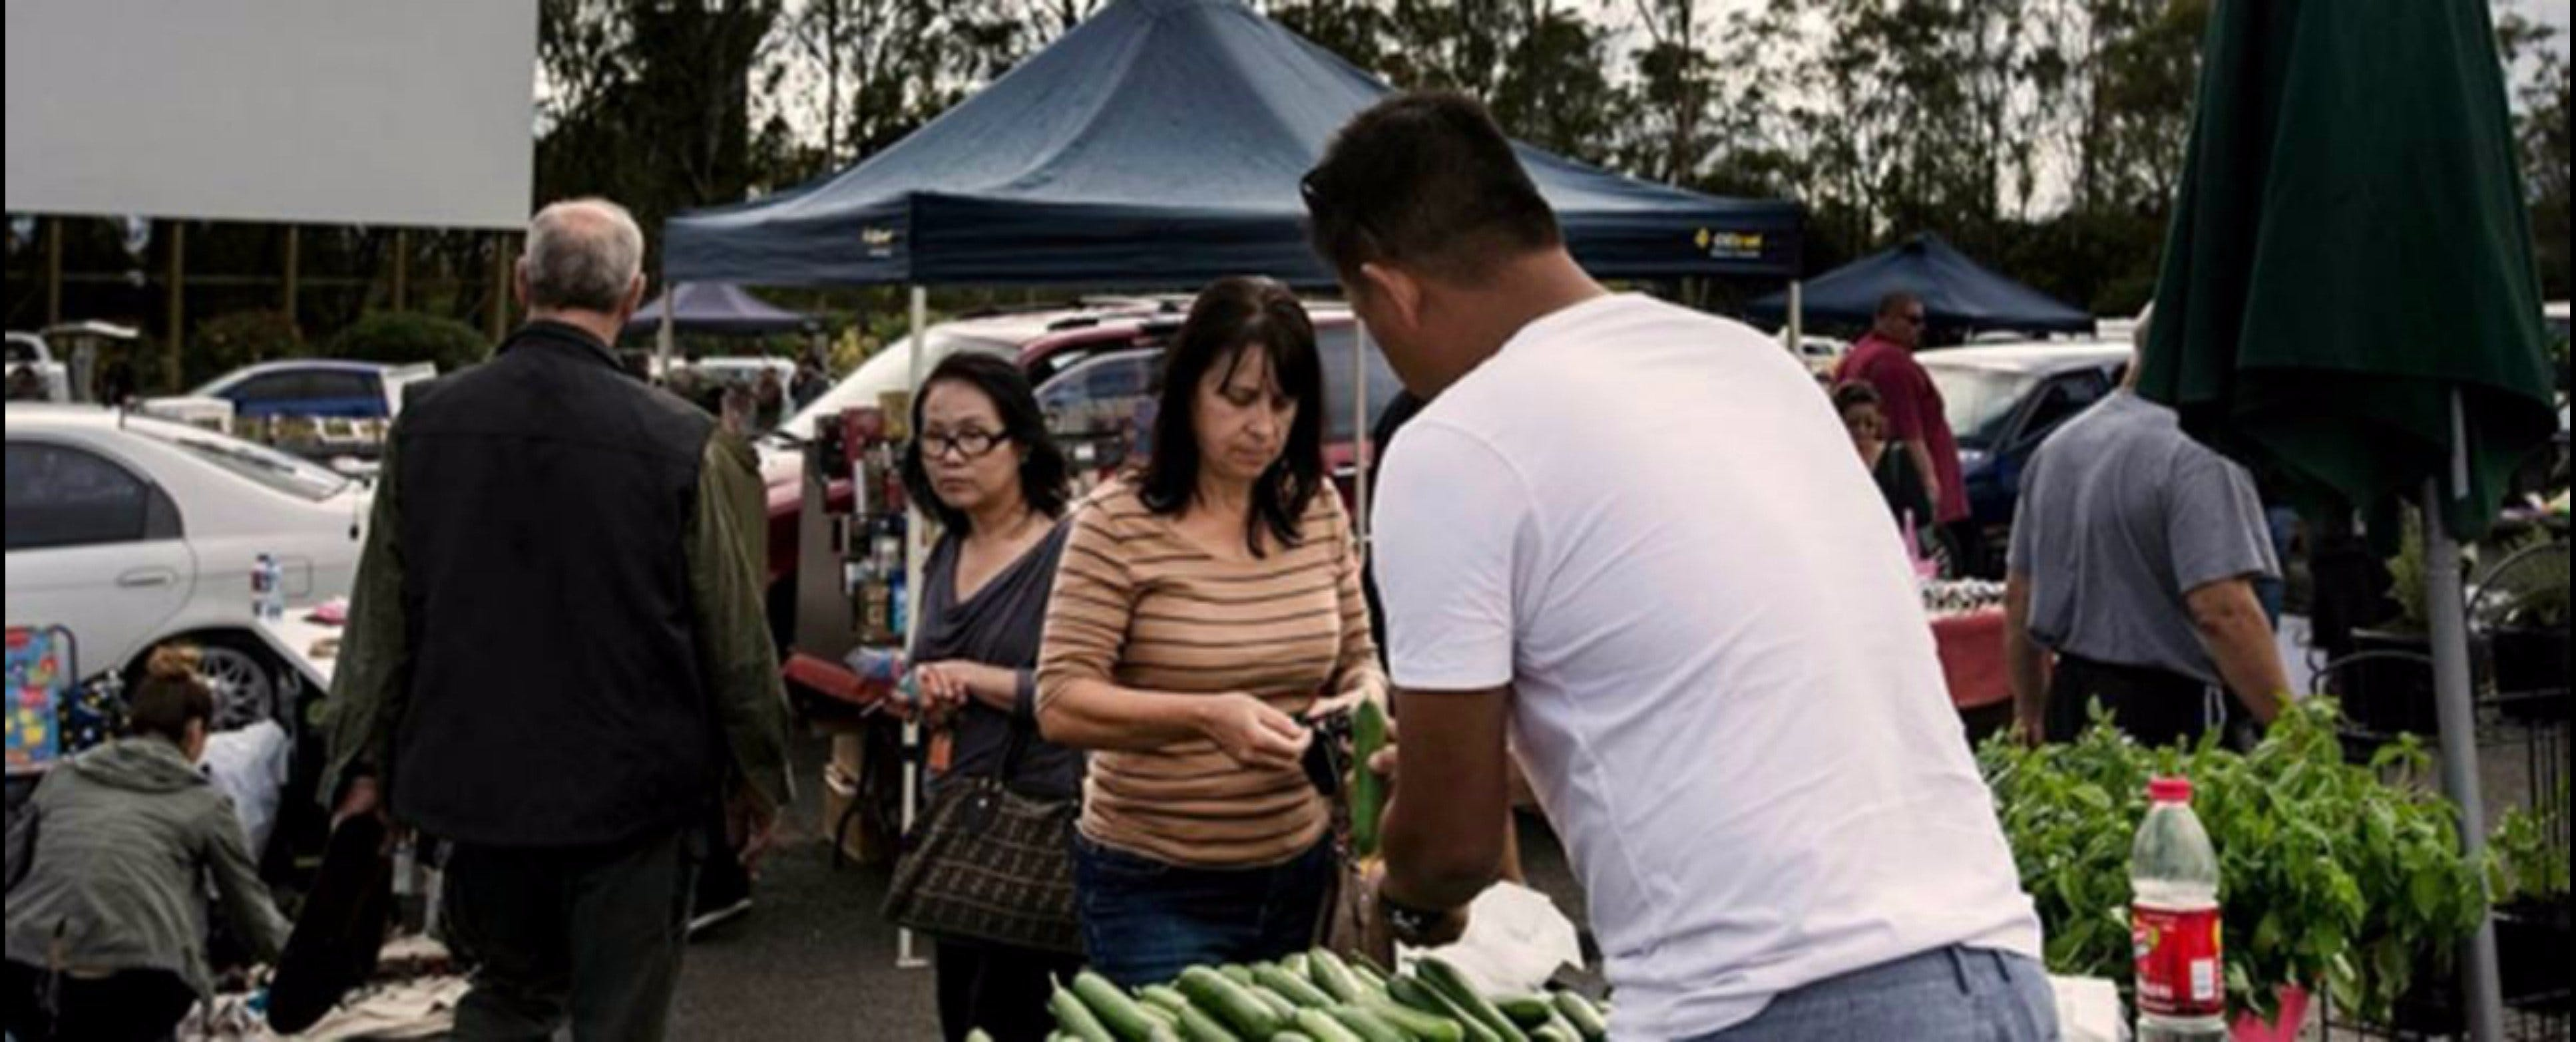 Blacktown Markets - Tourism Adelaide